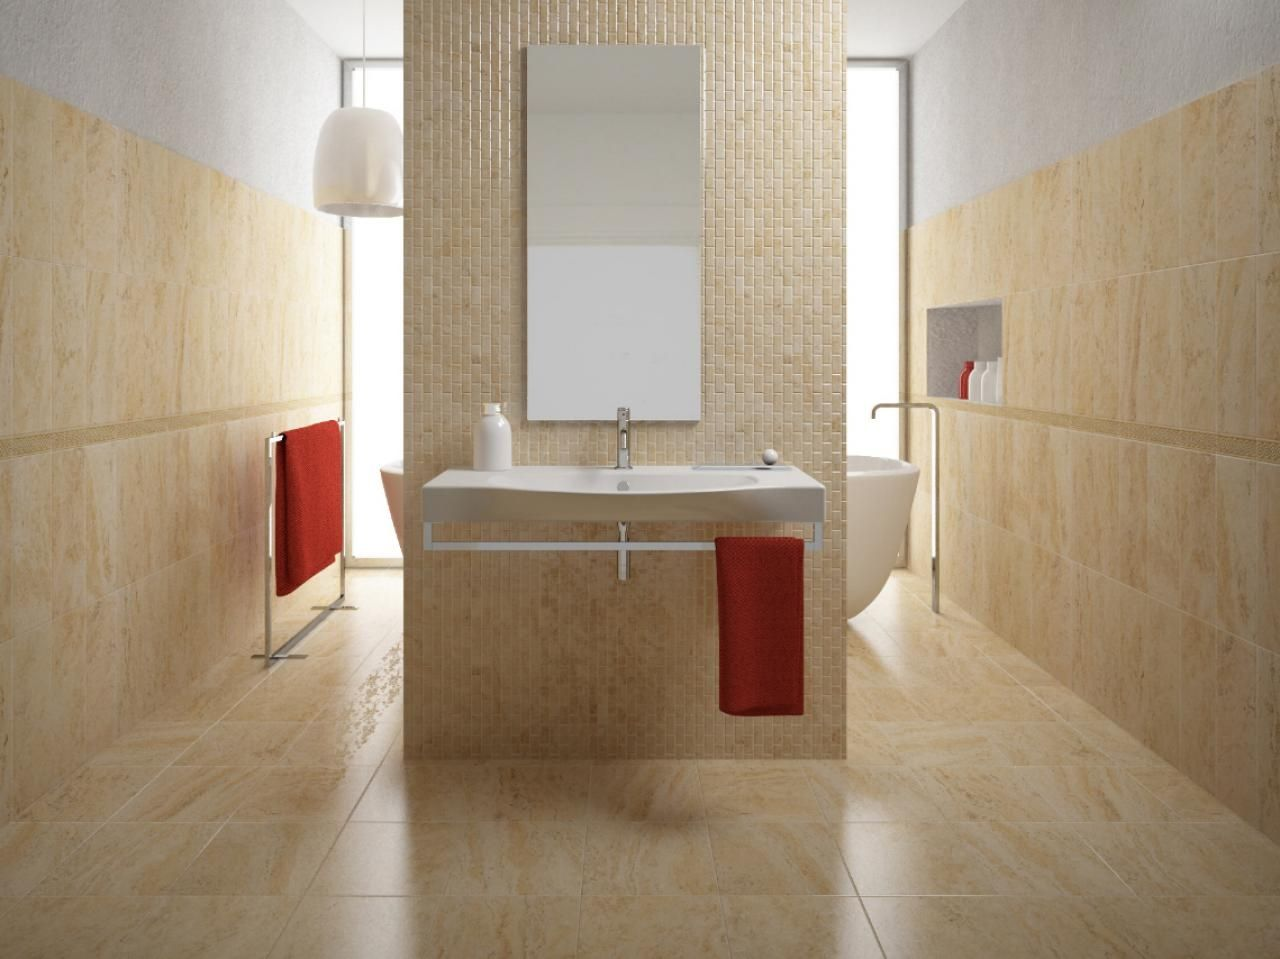 Porcelain Tile Bathroom Floor Slippery Httpnextsoftcom - Are porcelain floor tiles slippery